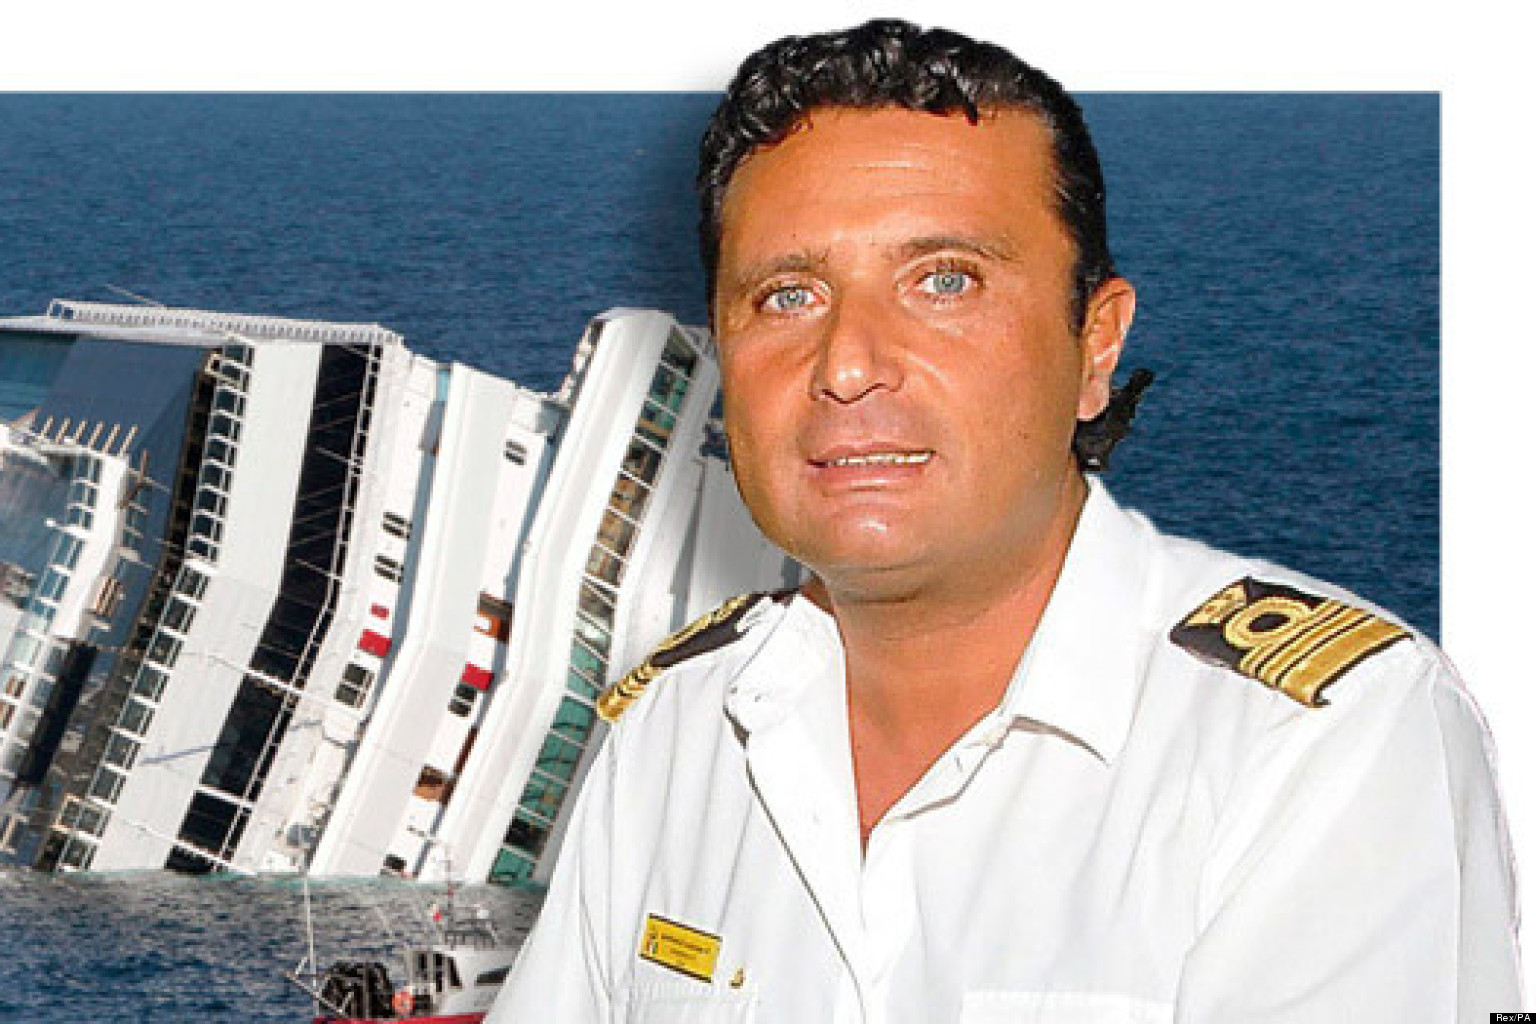 Pena ridicola per Francesco Schettino